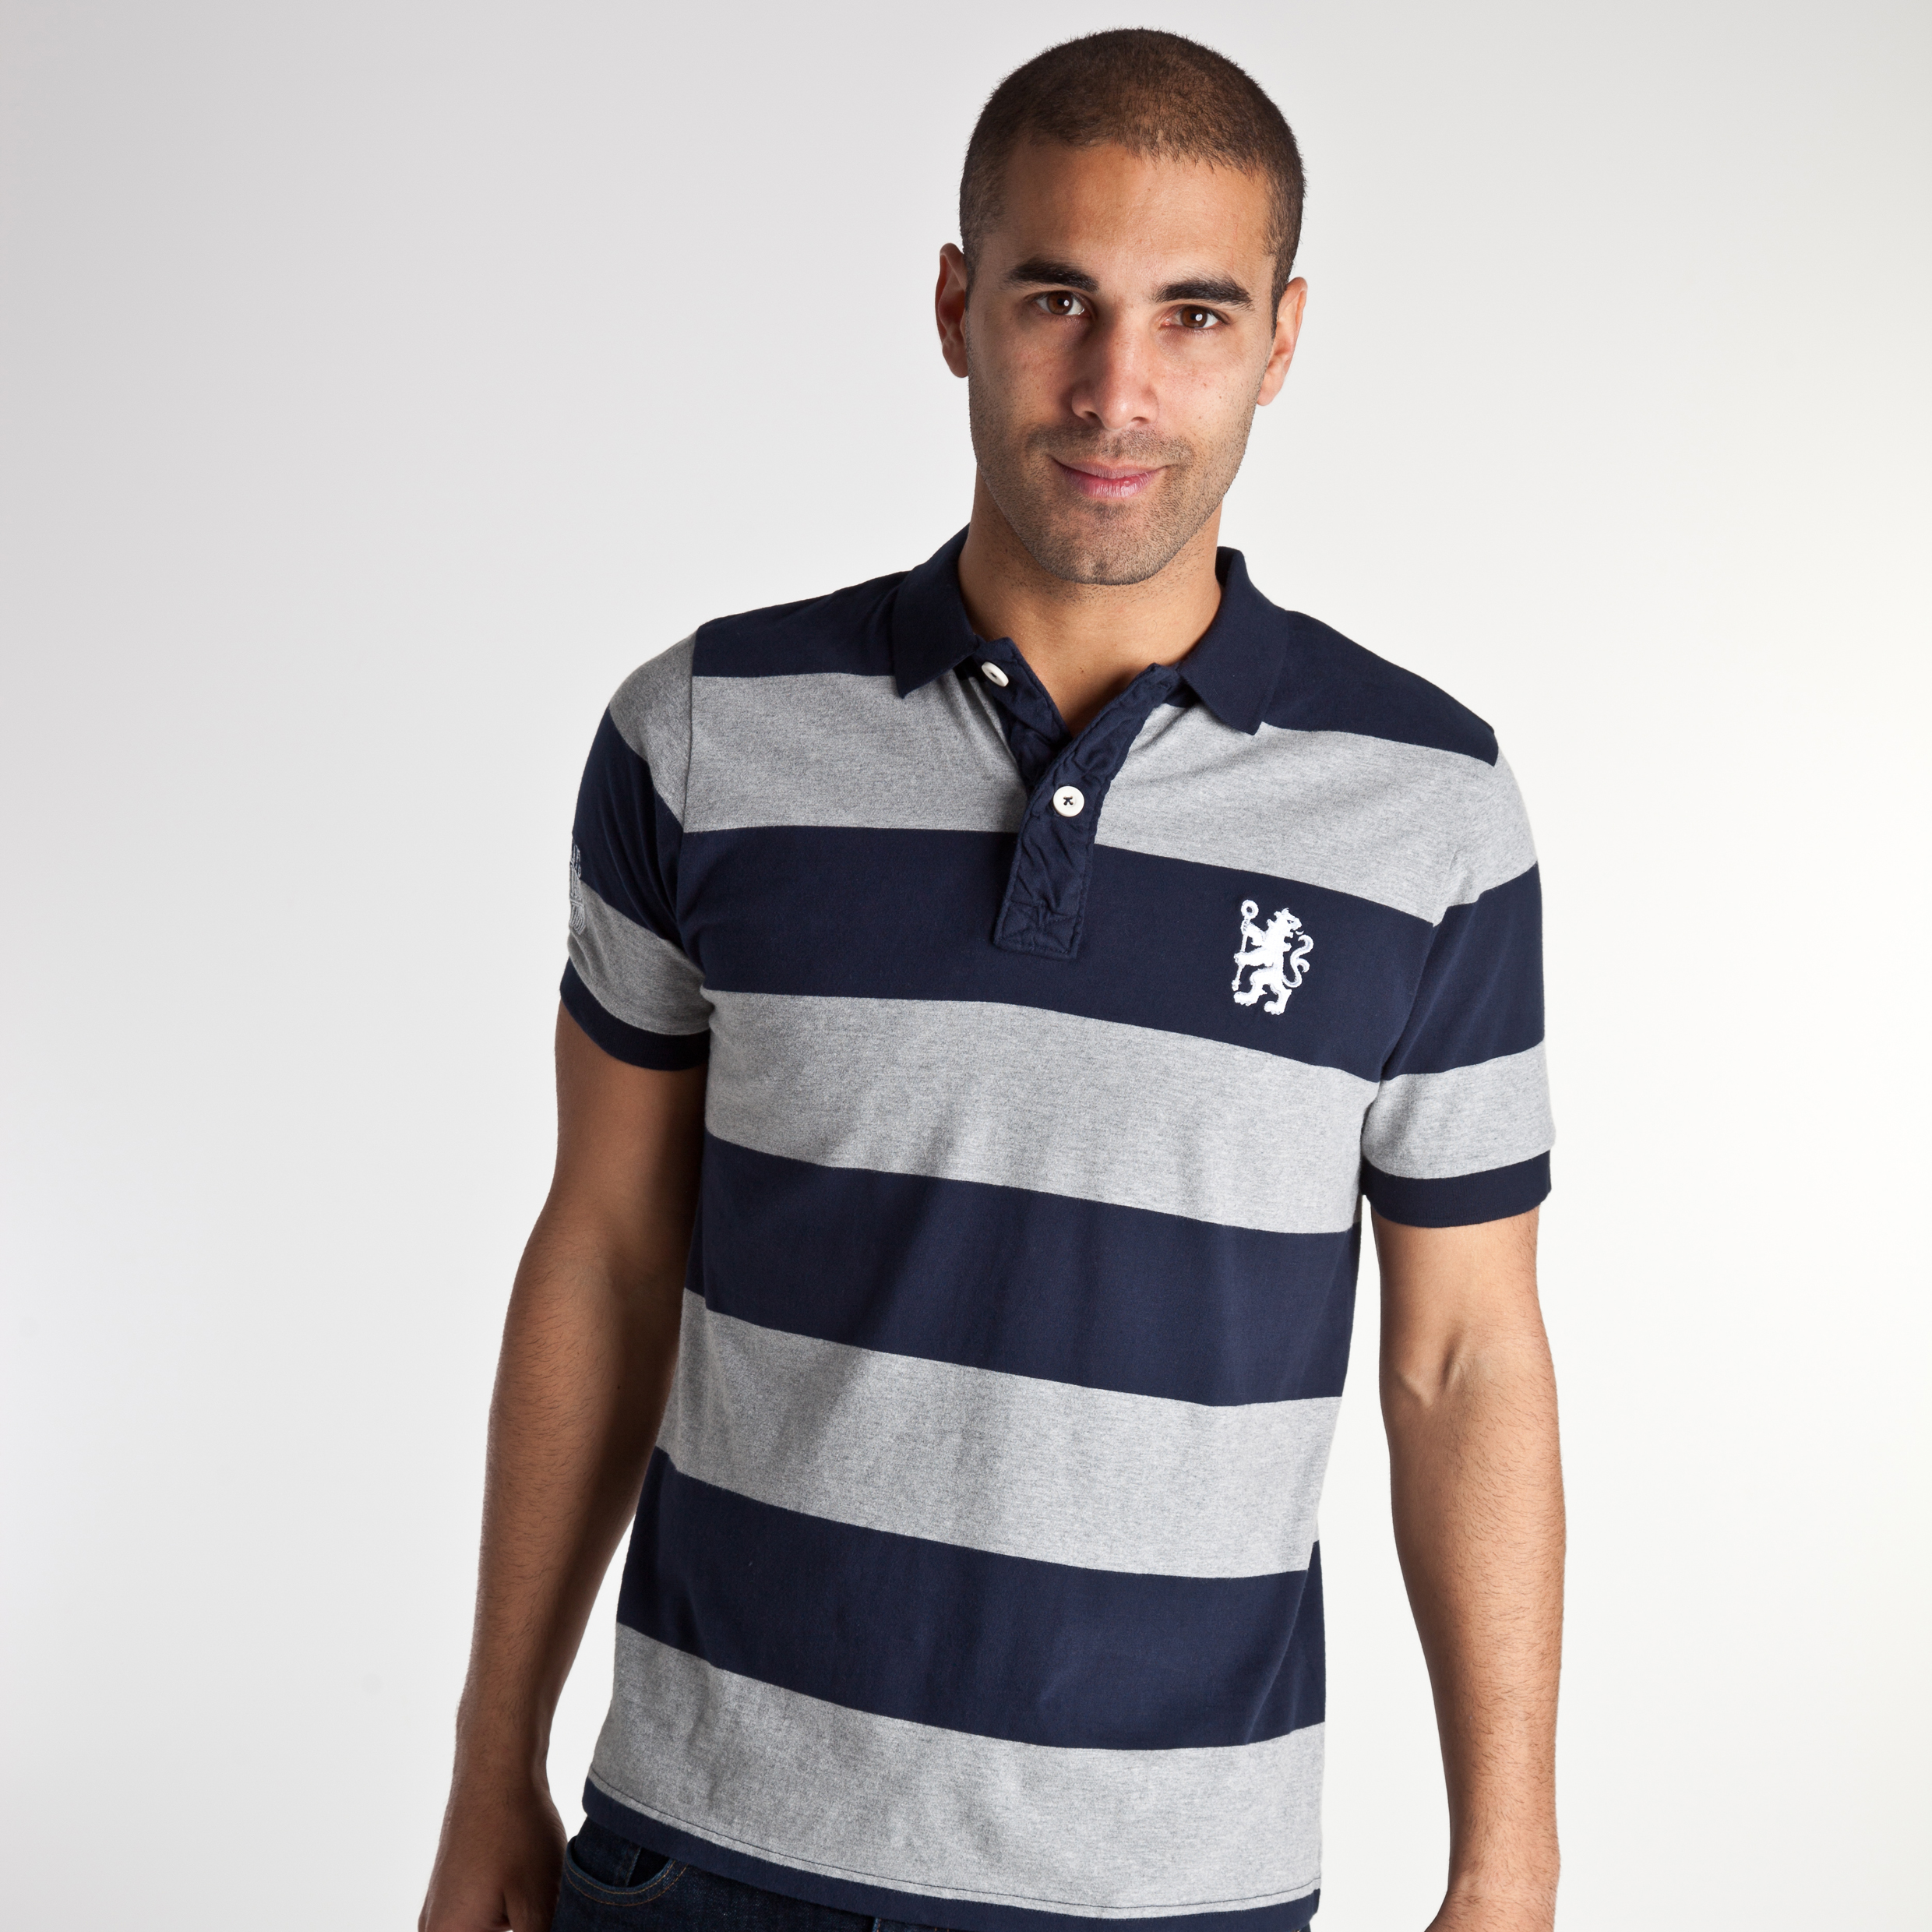 Chelsea 1905 Engineered Striped Polo - Navy/Grey Marl - Mens